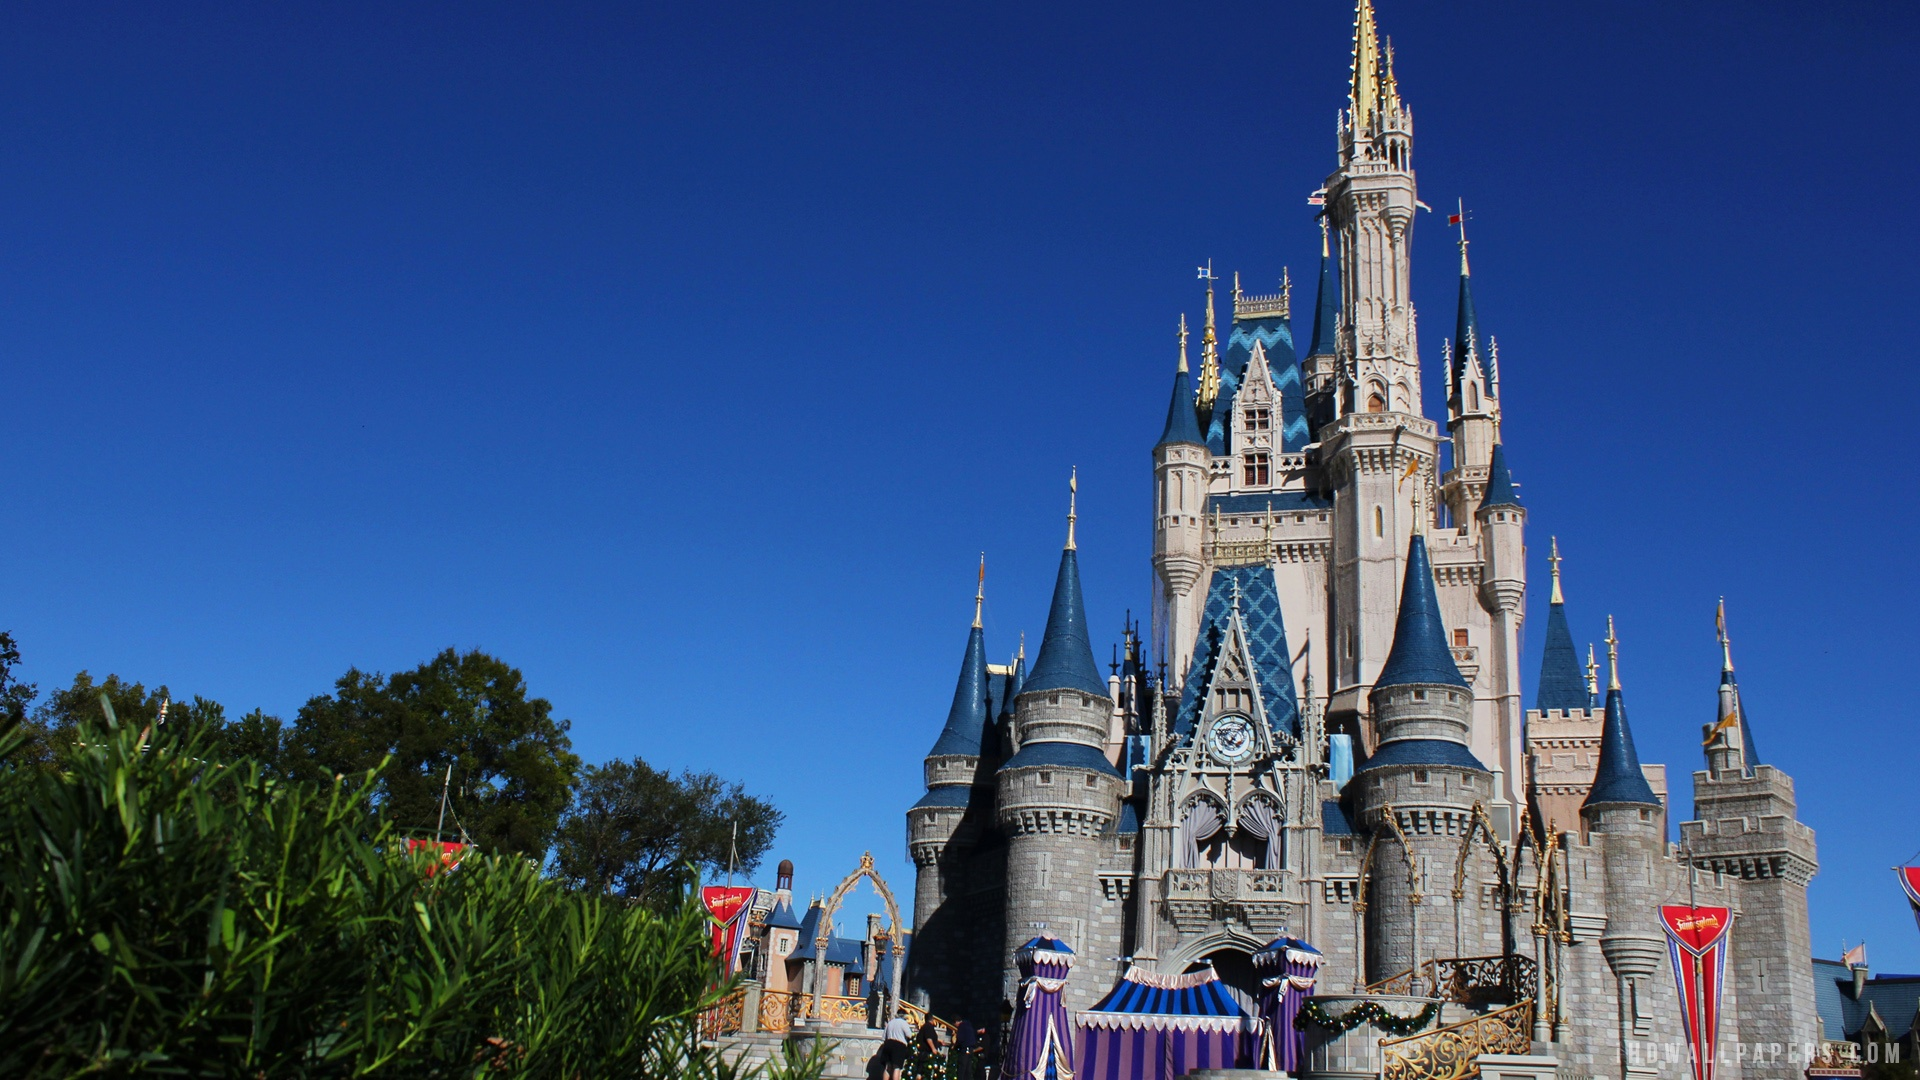 Disney Castle HD Wallpaper   iHD Wallpapers 1920x1080